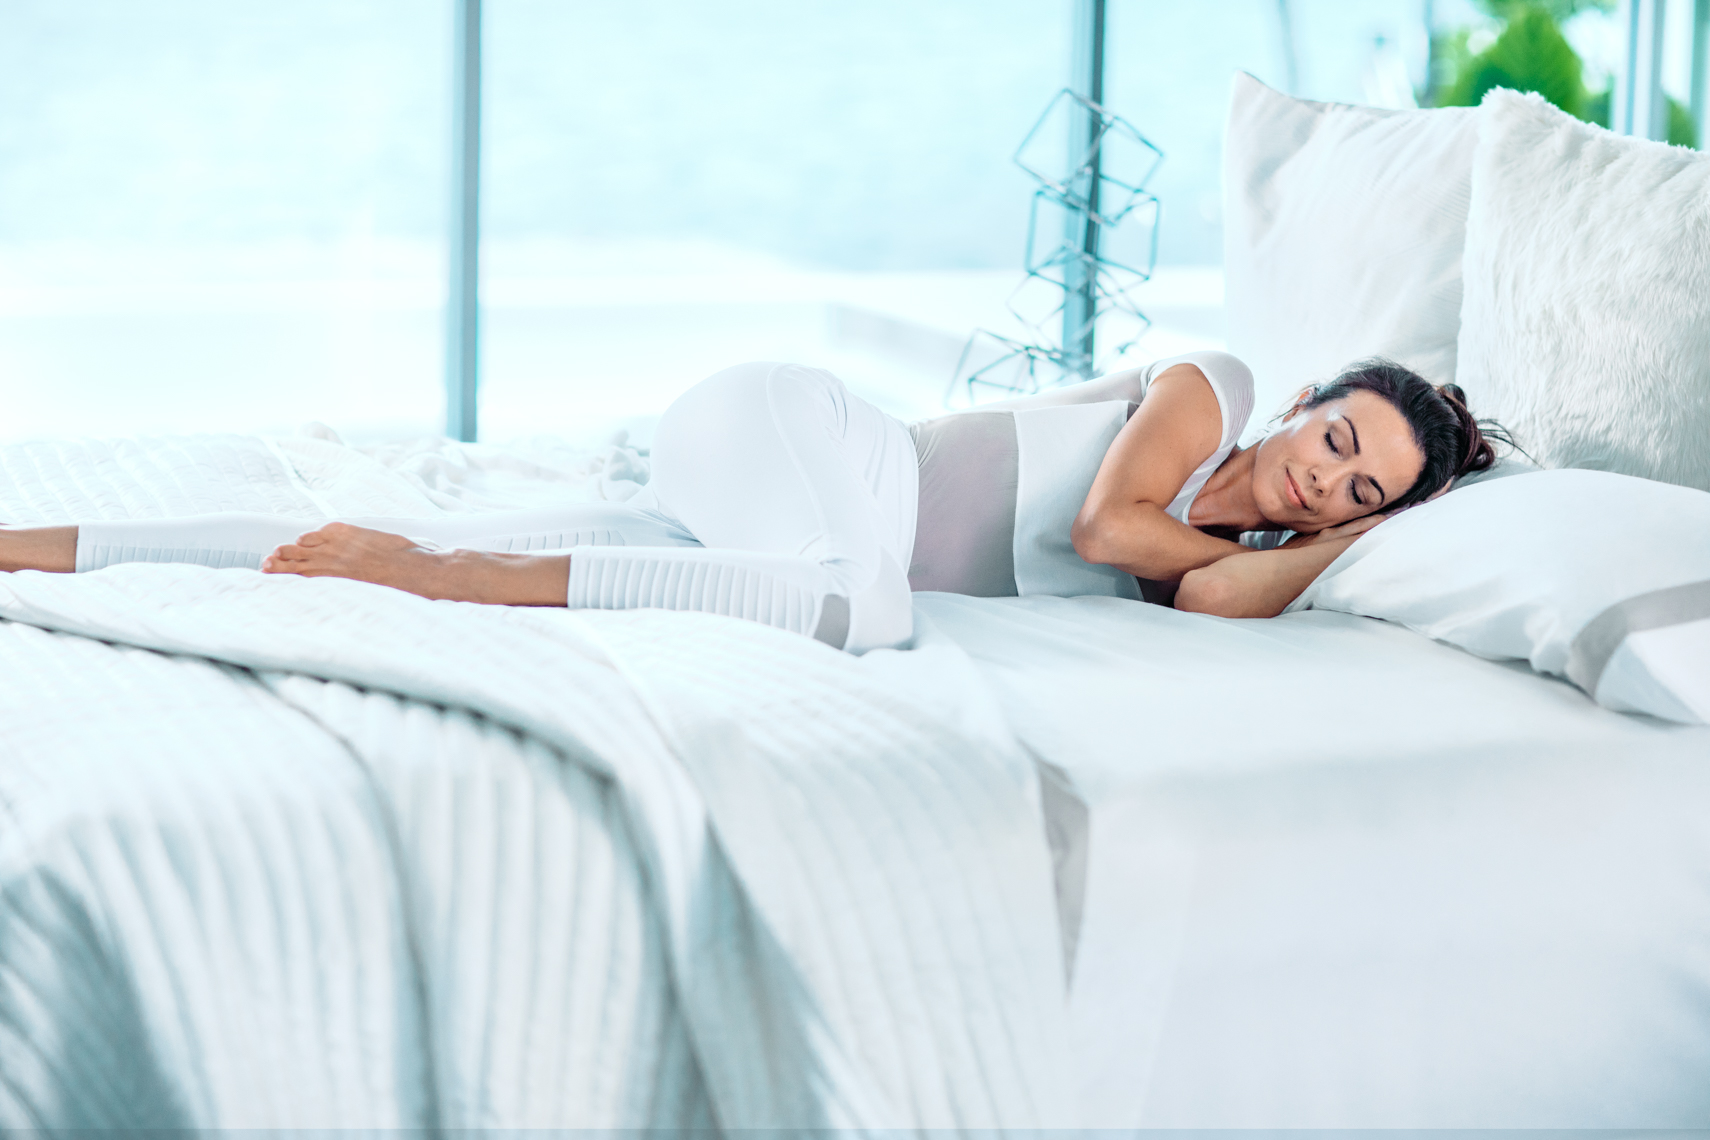 shot18_Intellibed_7924-1.jpg